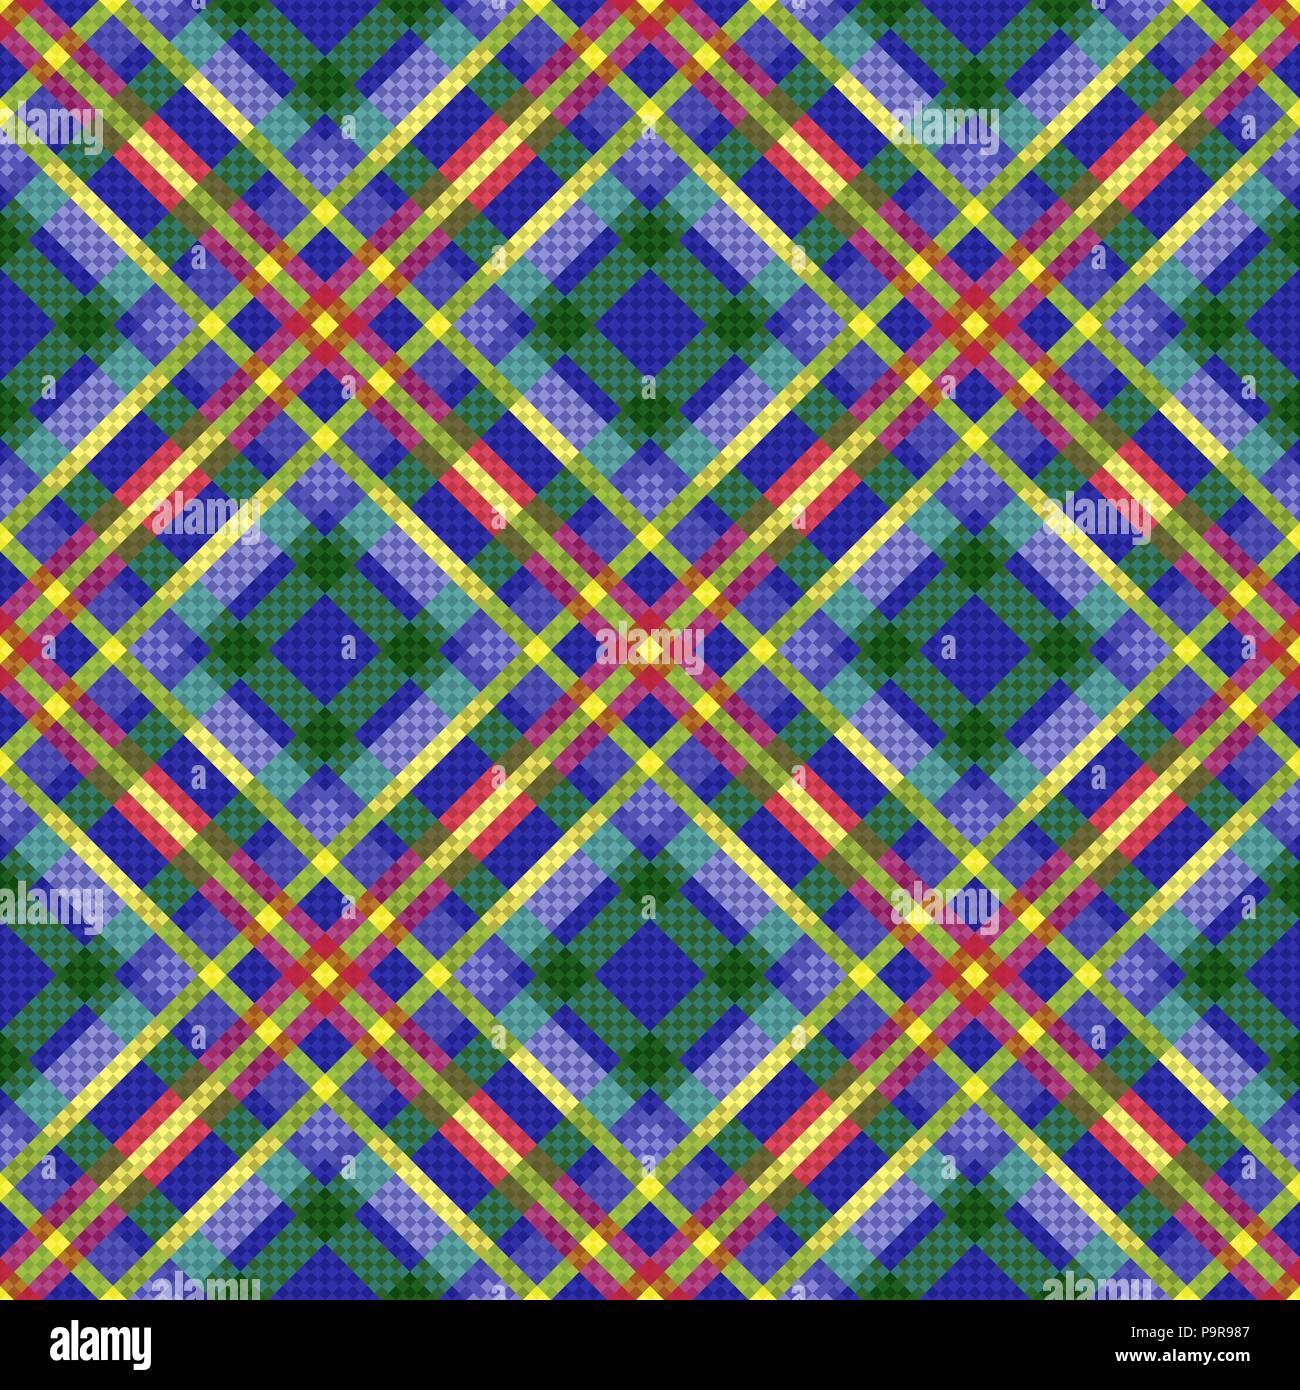 Seamless diagonal multicolor pattern in blue, violet, green, red and yellow hues, vector as a fabric texture - Stock Vector